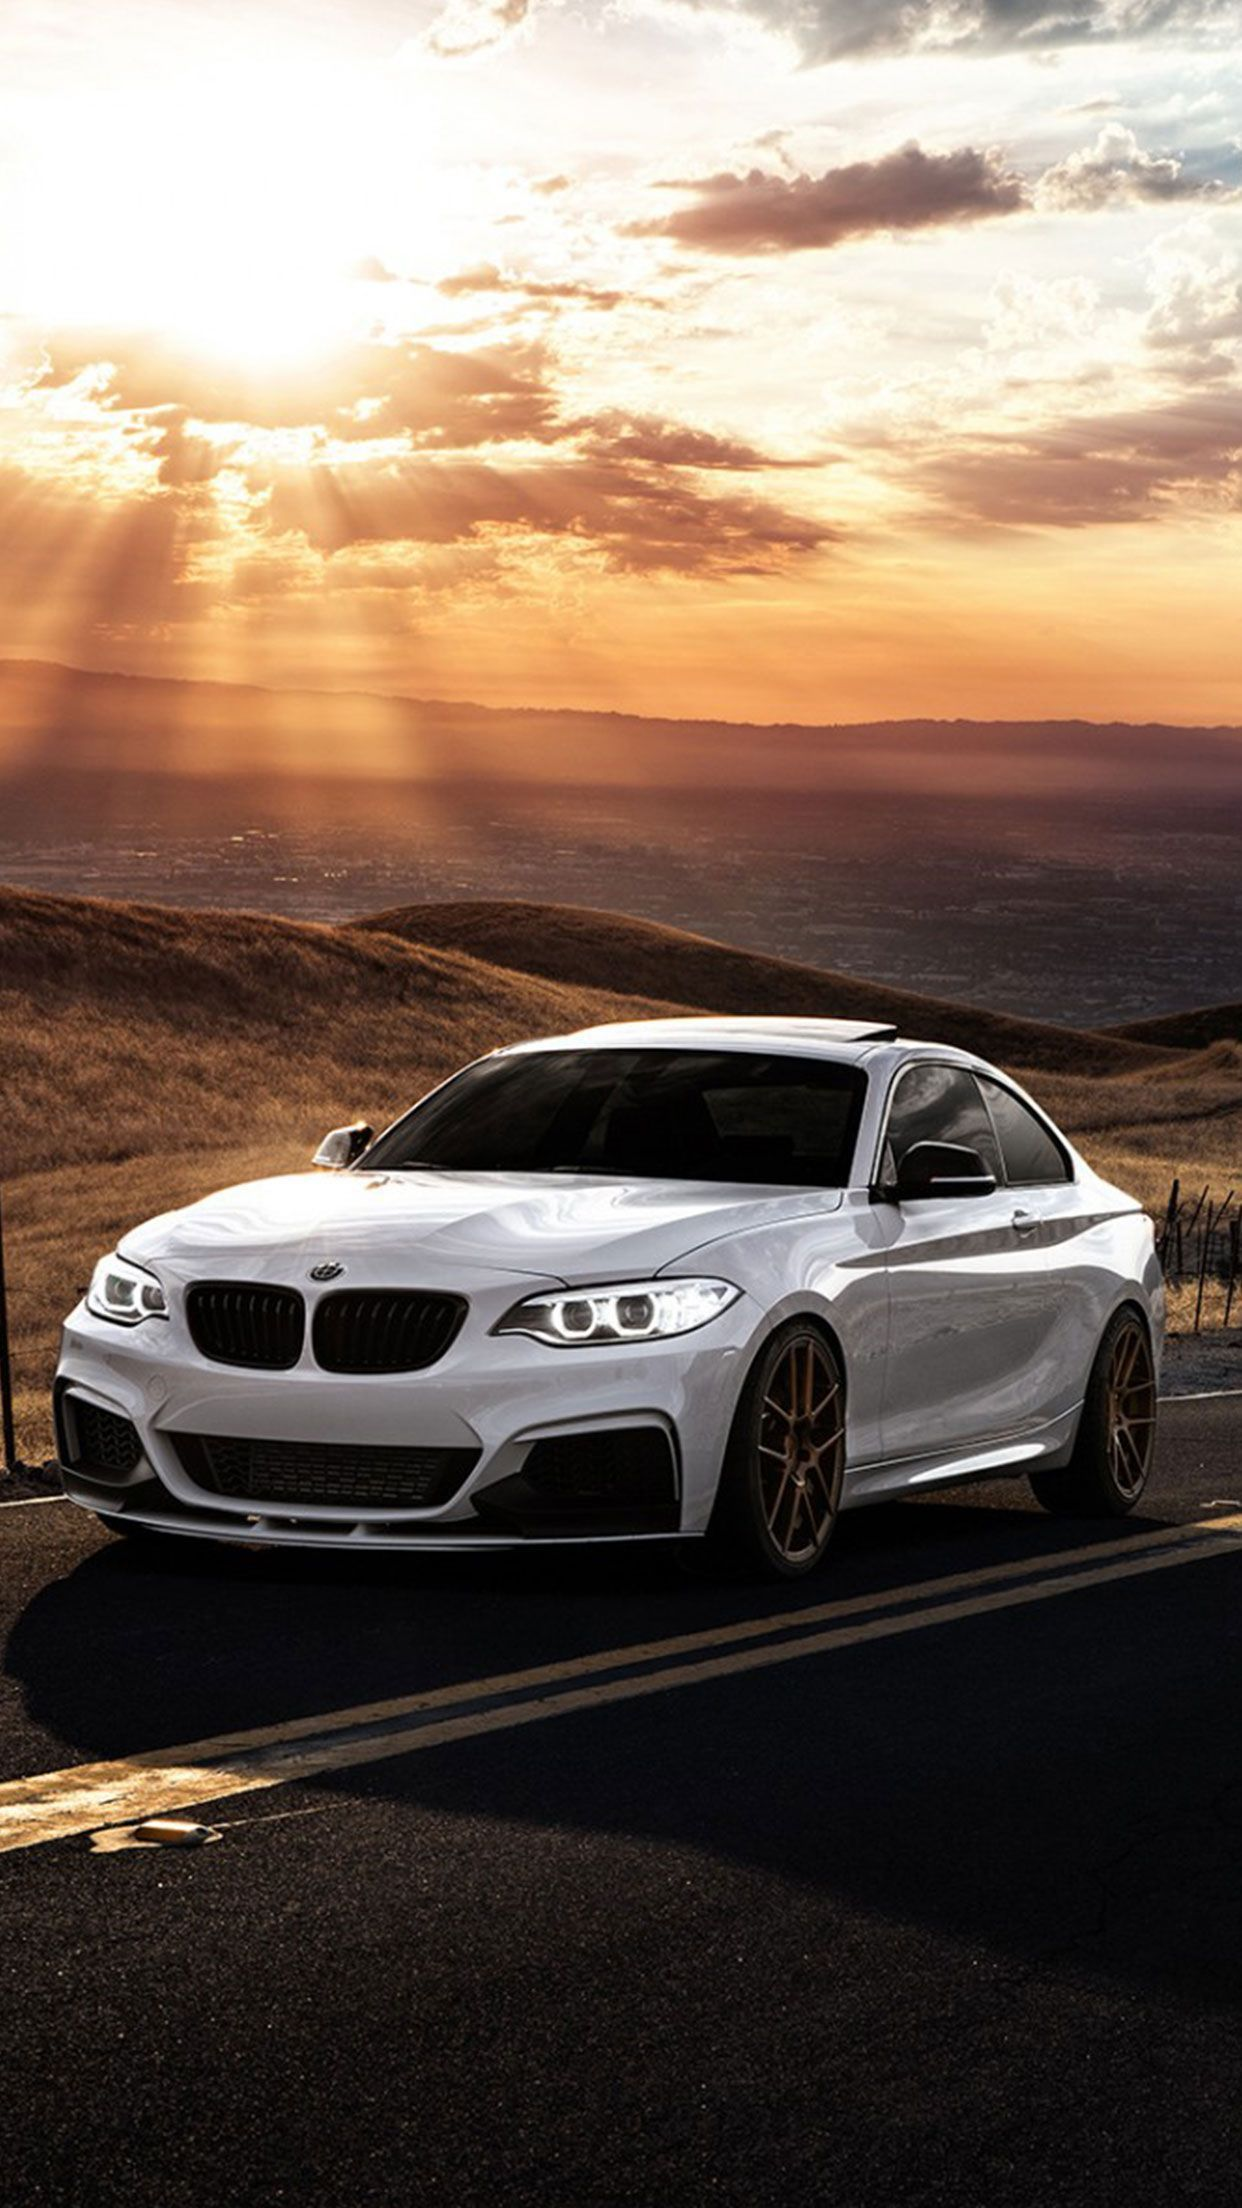 BMW iPhone Wallpapers   Top BMW iPhone Backgrounds 1242x2208